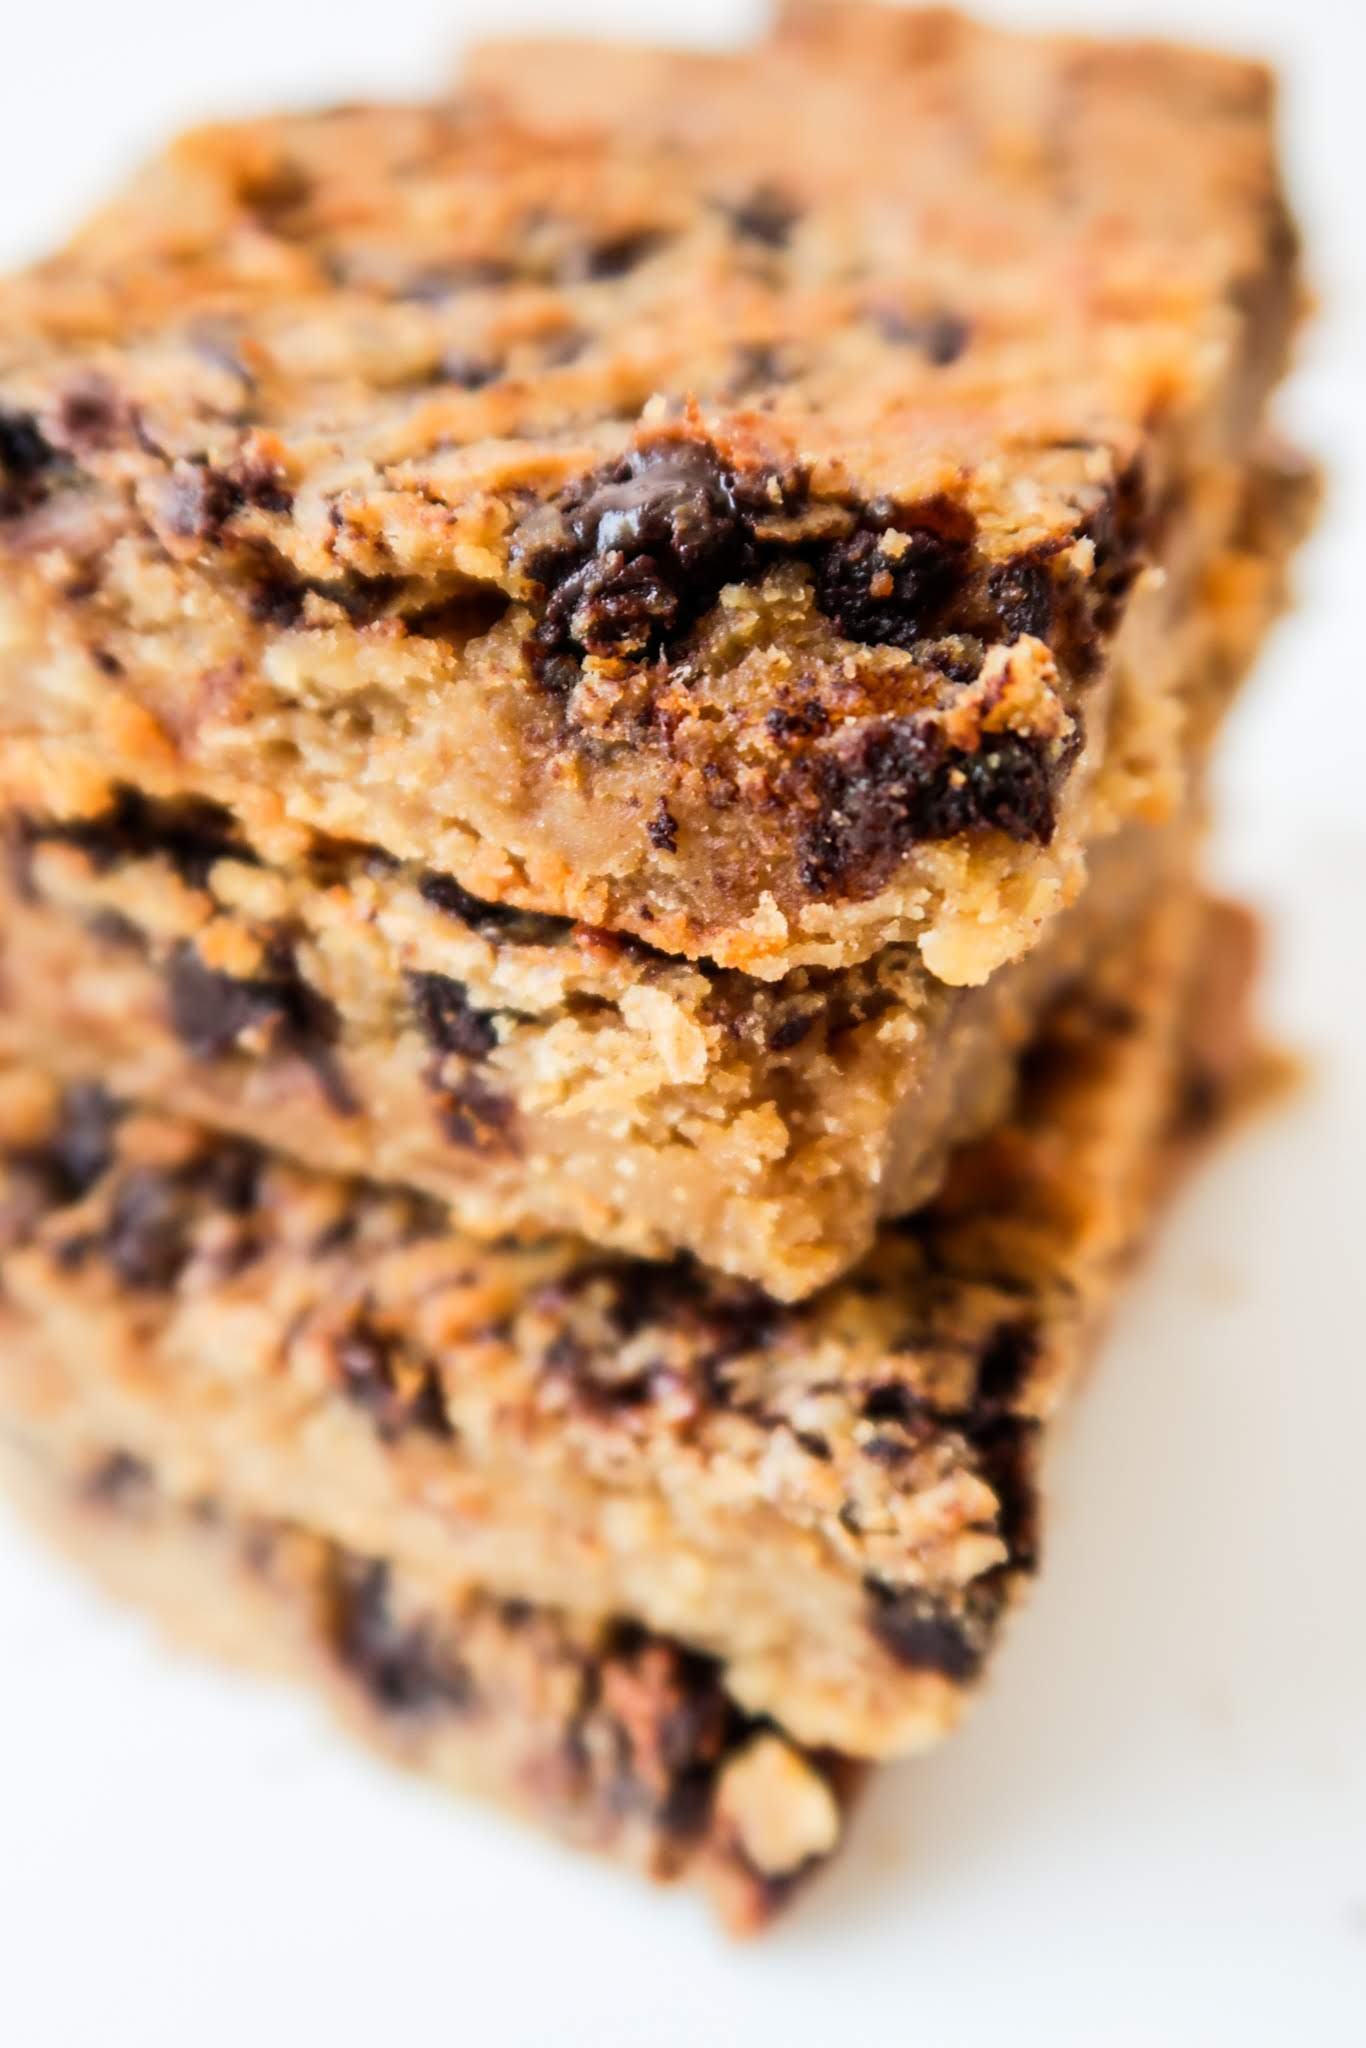 Healthy Peanut Butter Blondies Recipe With Chocolate chips! These easy flourless vegan chickpea blondies are a super delicious healthy dessert that you can make in around 30 minutes using minimal equipment. They're super delicious and you'll probably want to eat the entire thing in one day…